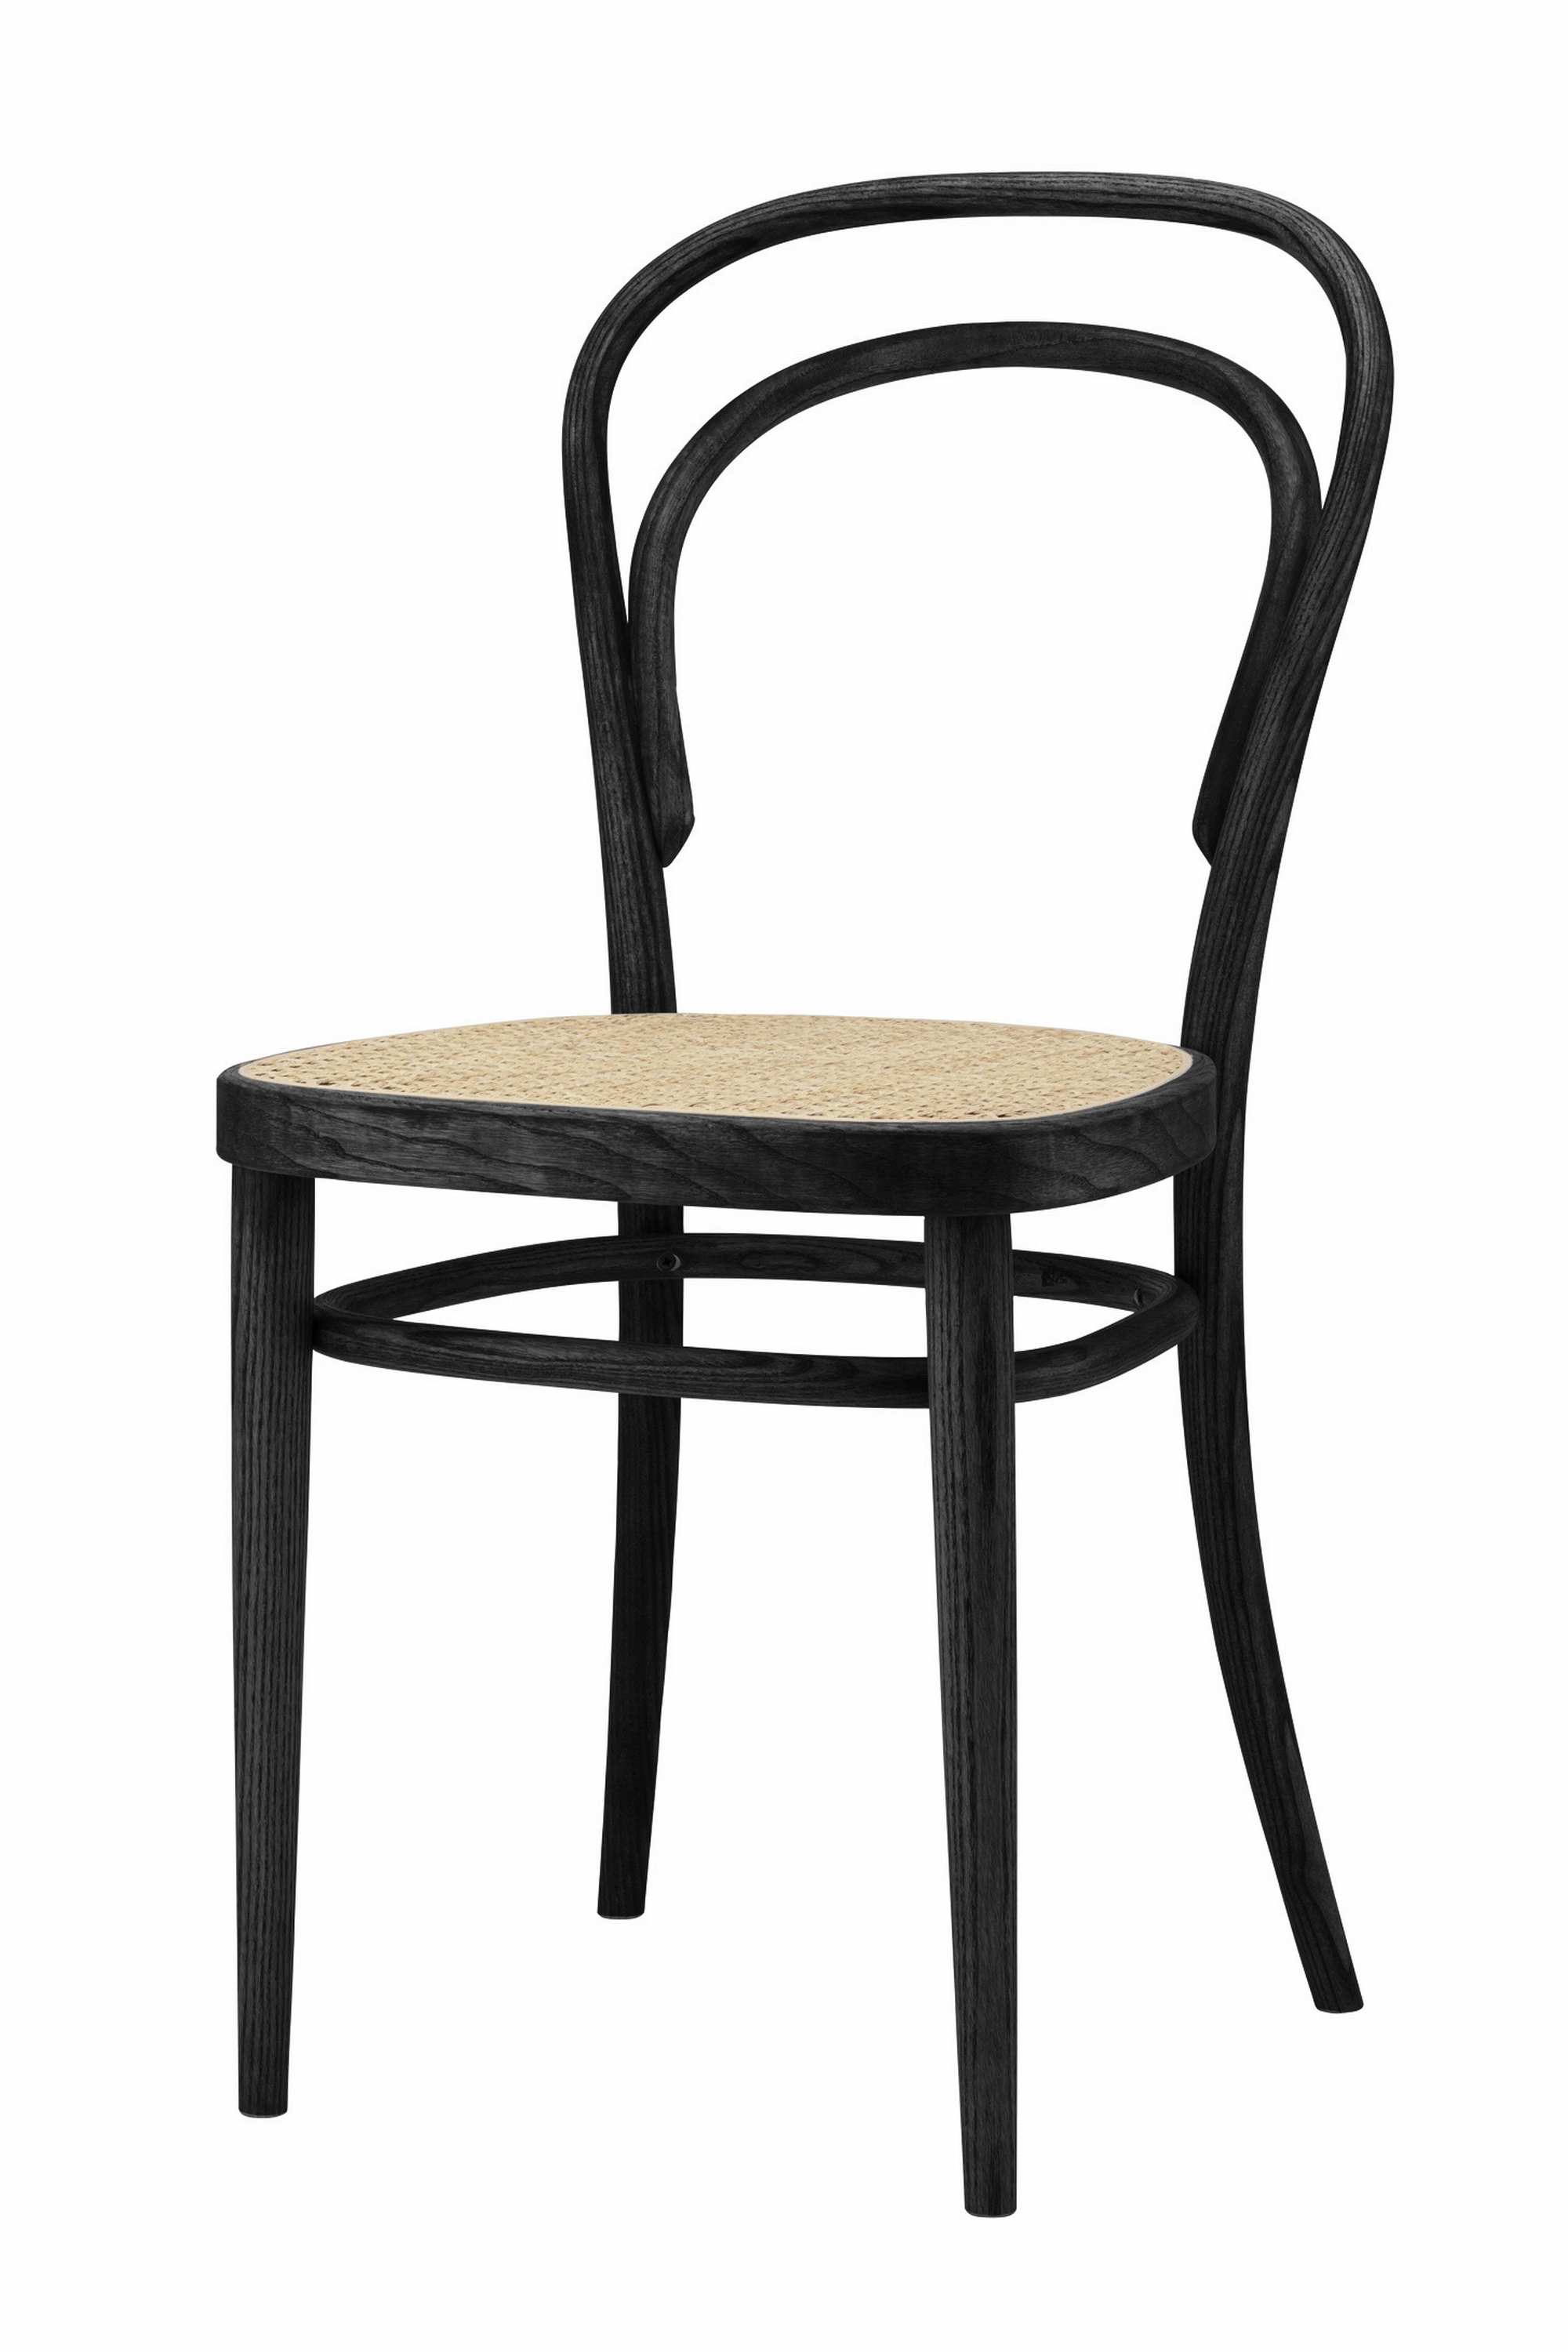 thonet kaffeehausstuhl 214 weltbekannter bugholzstuhl. Black Bedroom Furniture Sets. Home Design Ideas